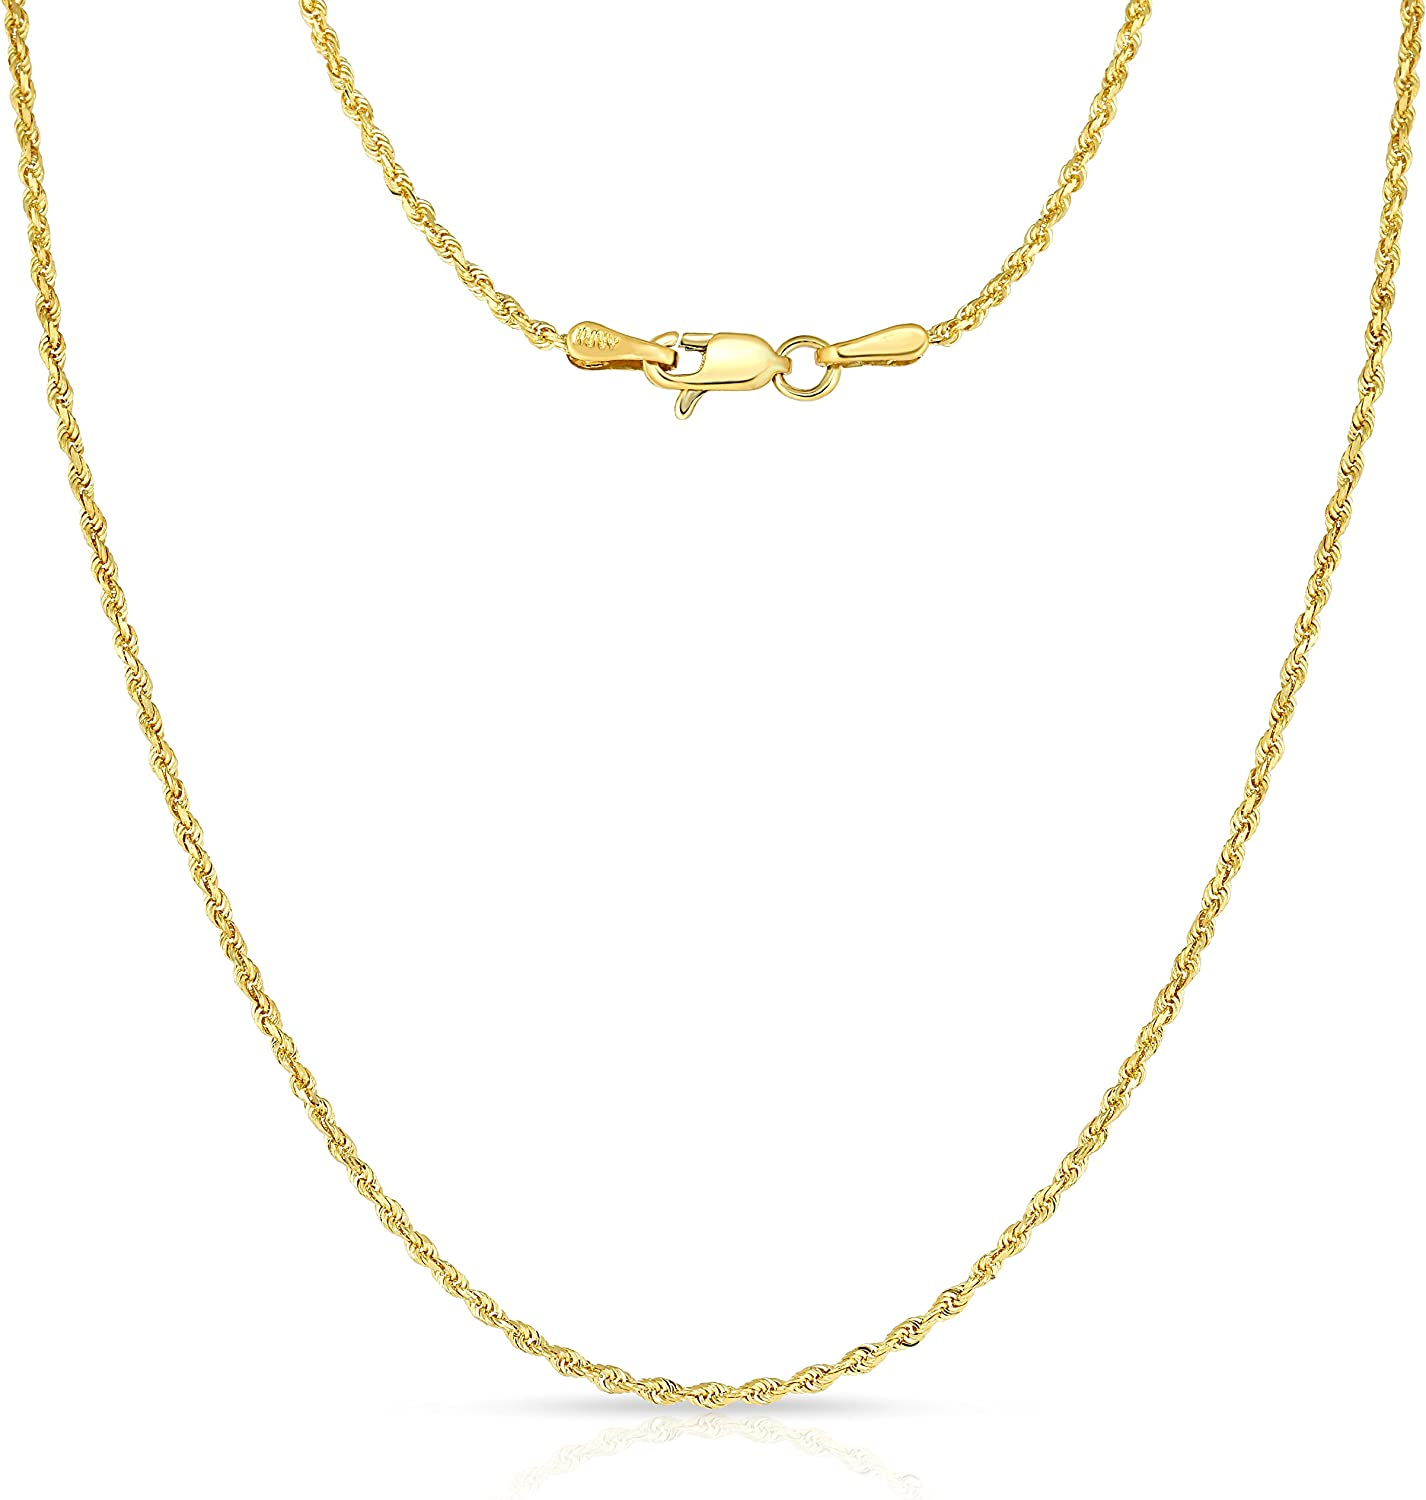 Floreo 10k Yellow Gold 1.5mm Solid Diamond Cut Rope Chain Necklace